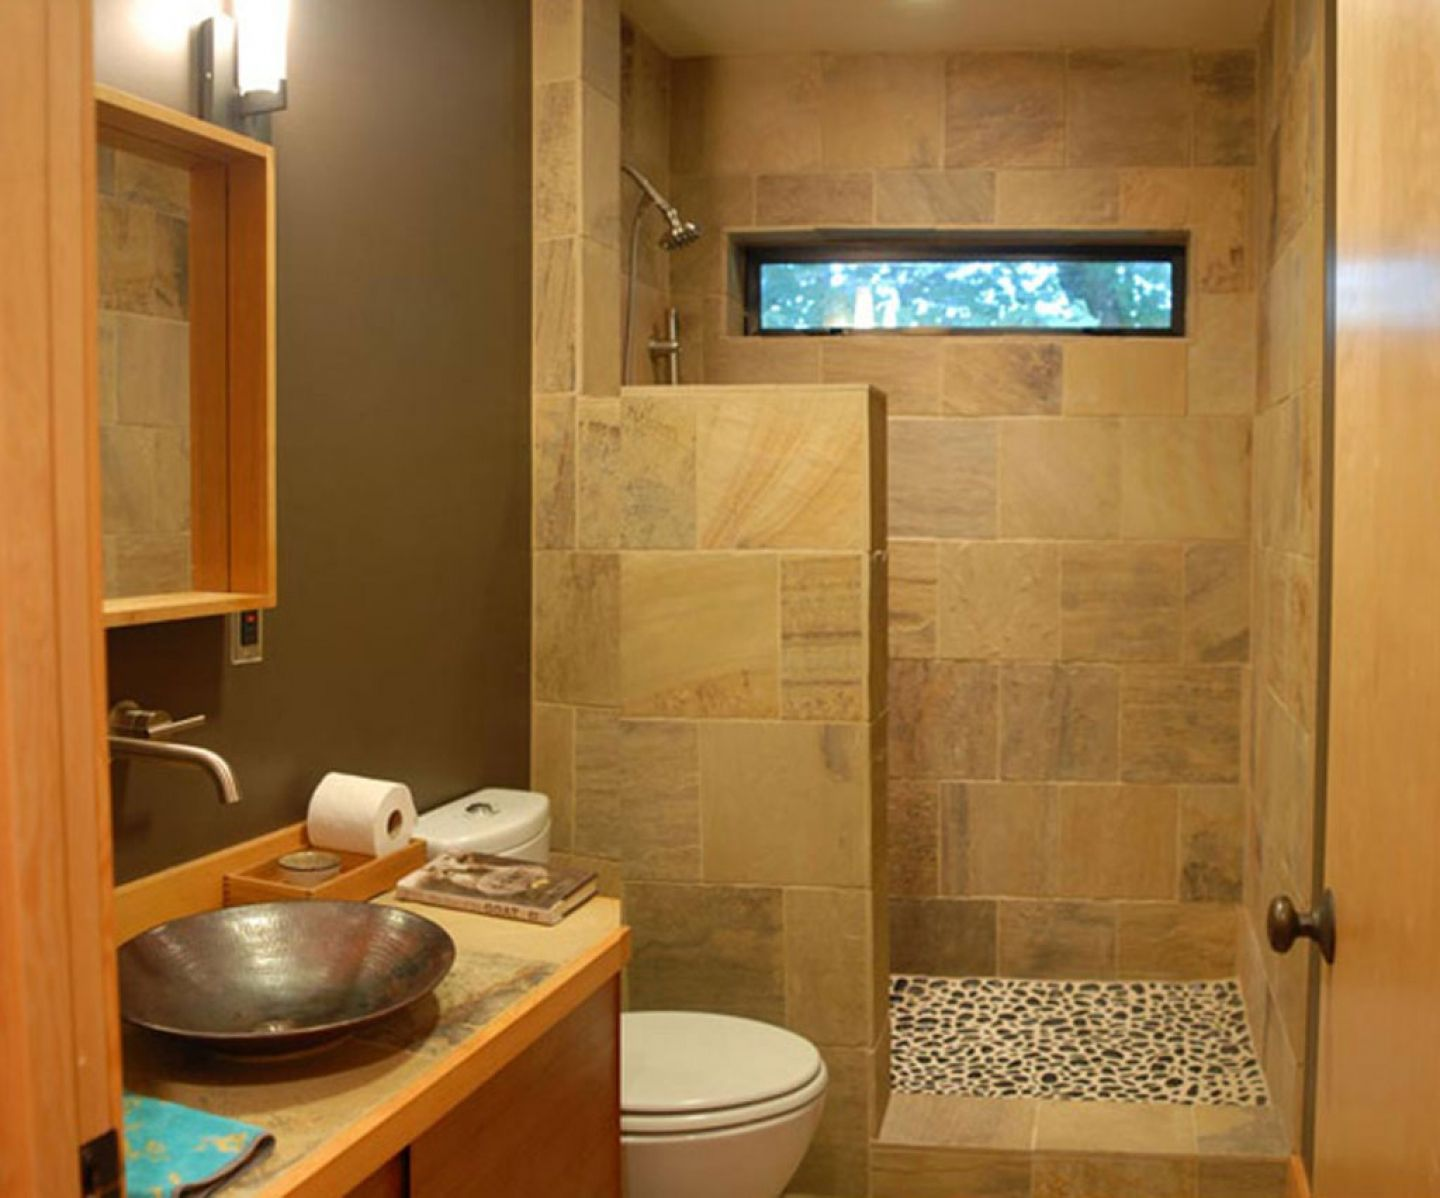 Bathroom Design For Tiny House 30 best small bathroom ideas | small bathroom, ranch style and ranch